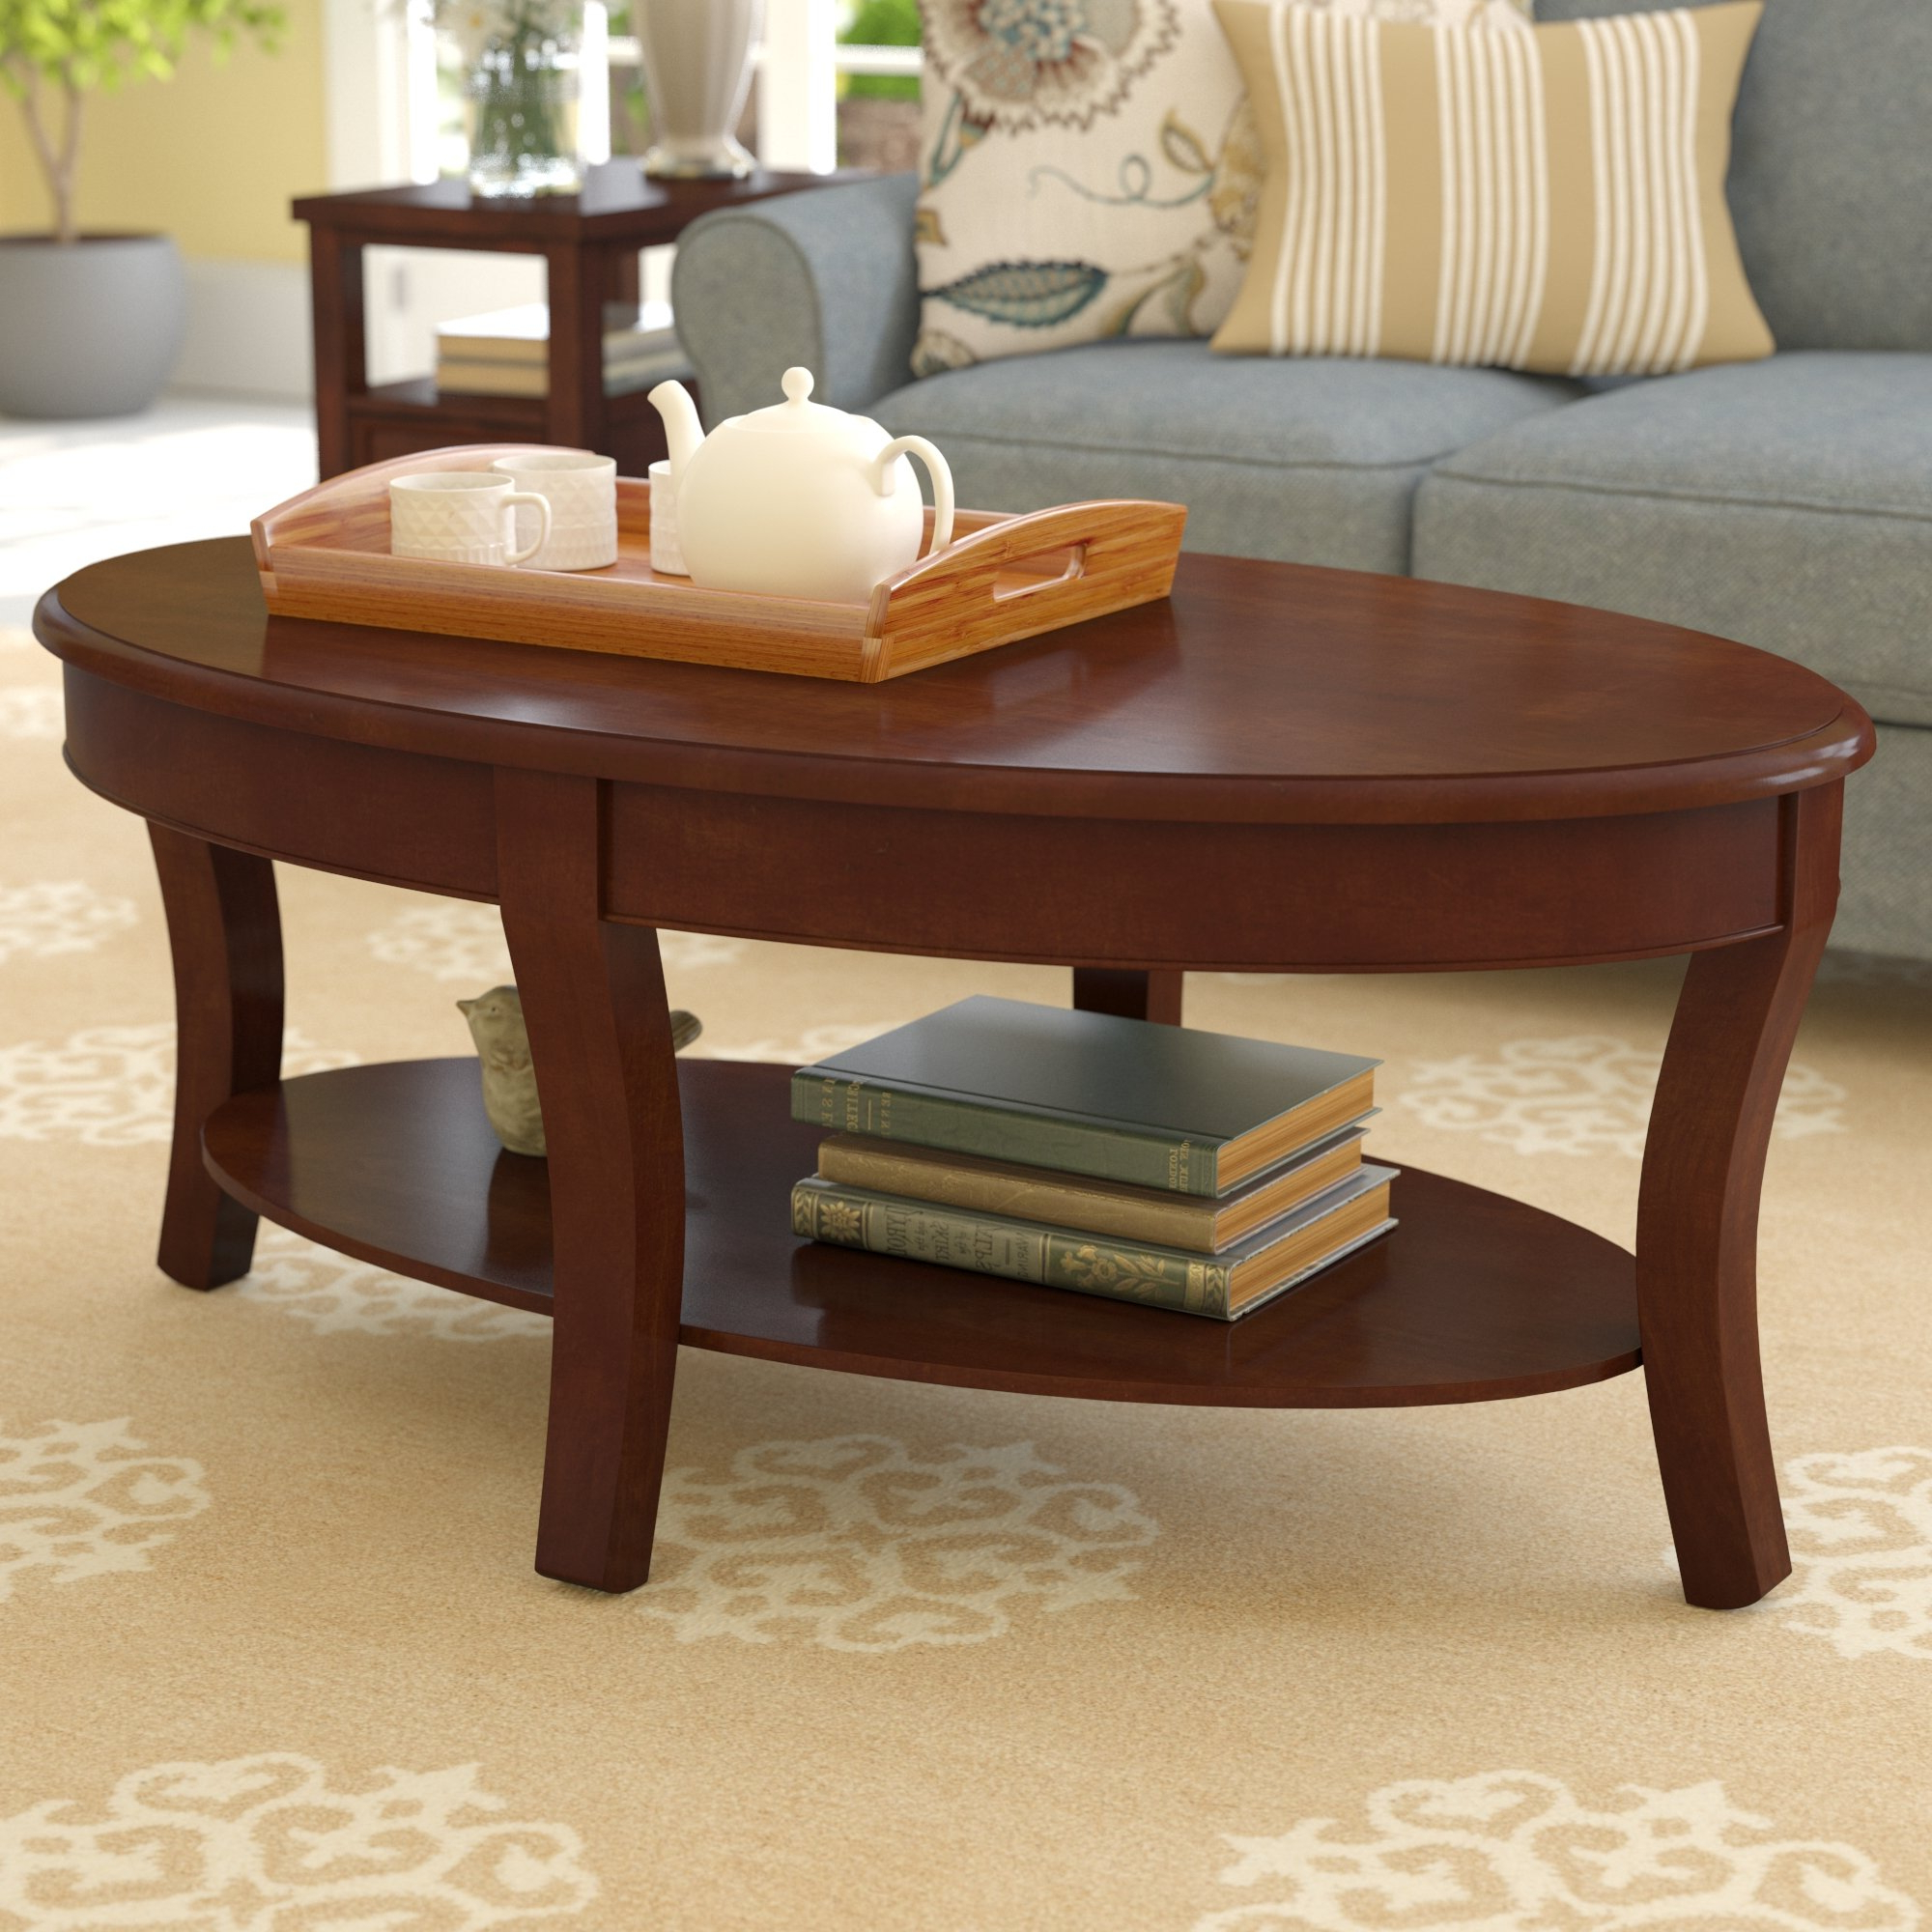 Wayfair For Stack Hi Gloss Wood Coffee Tables (View 6 of 20)